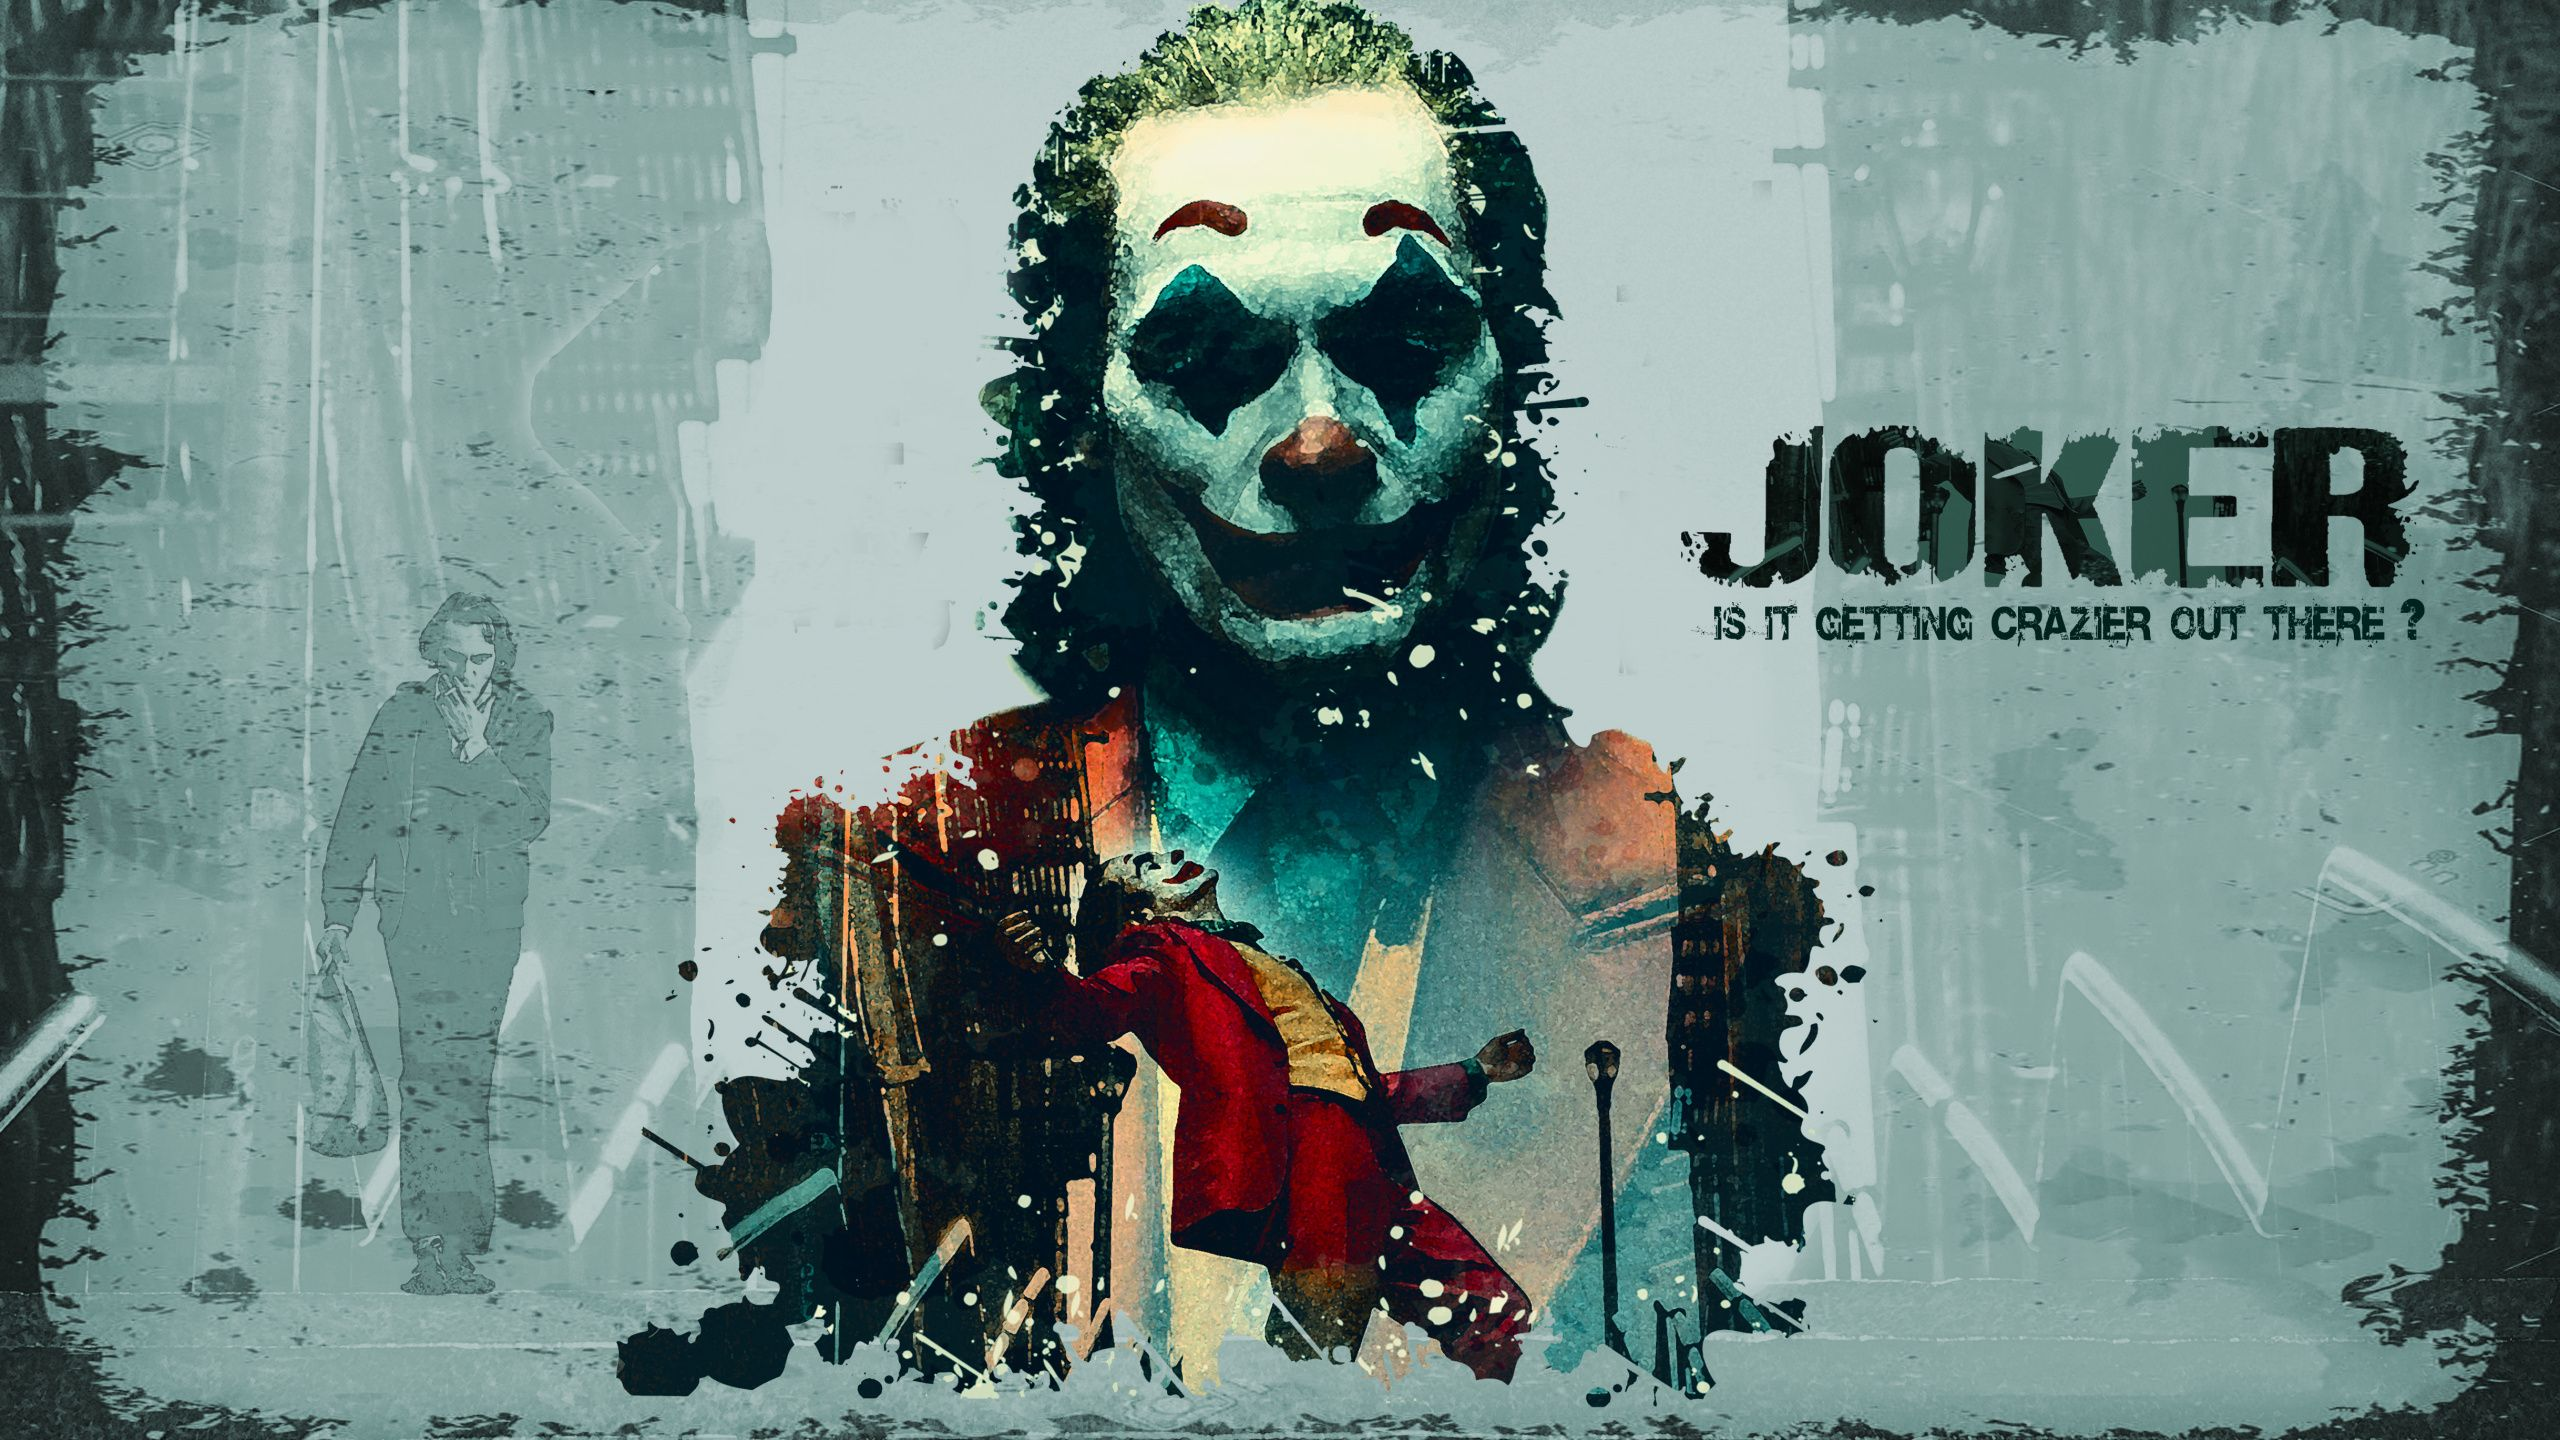 2560x1440 Joker 2019 Movie Wallpaper In 2020 Joker Hd Wallpaper Joker Wallpapers Joker Images